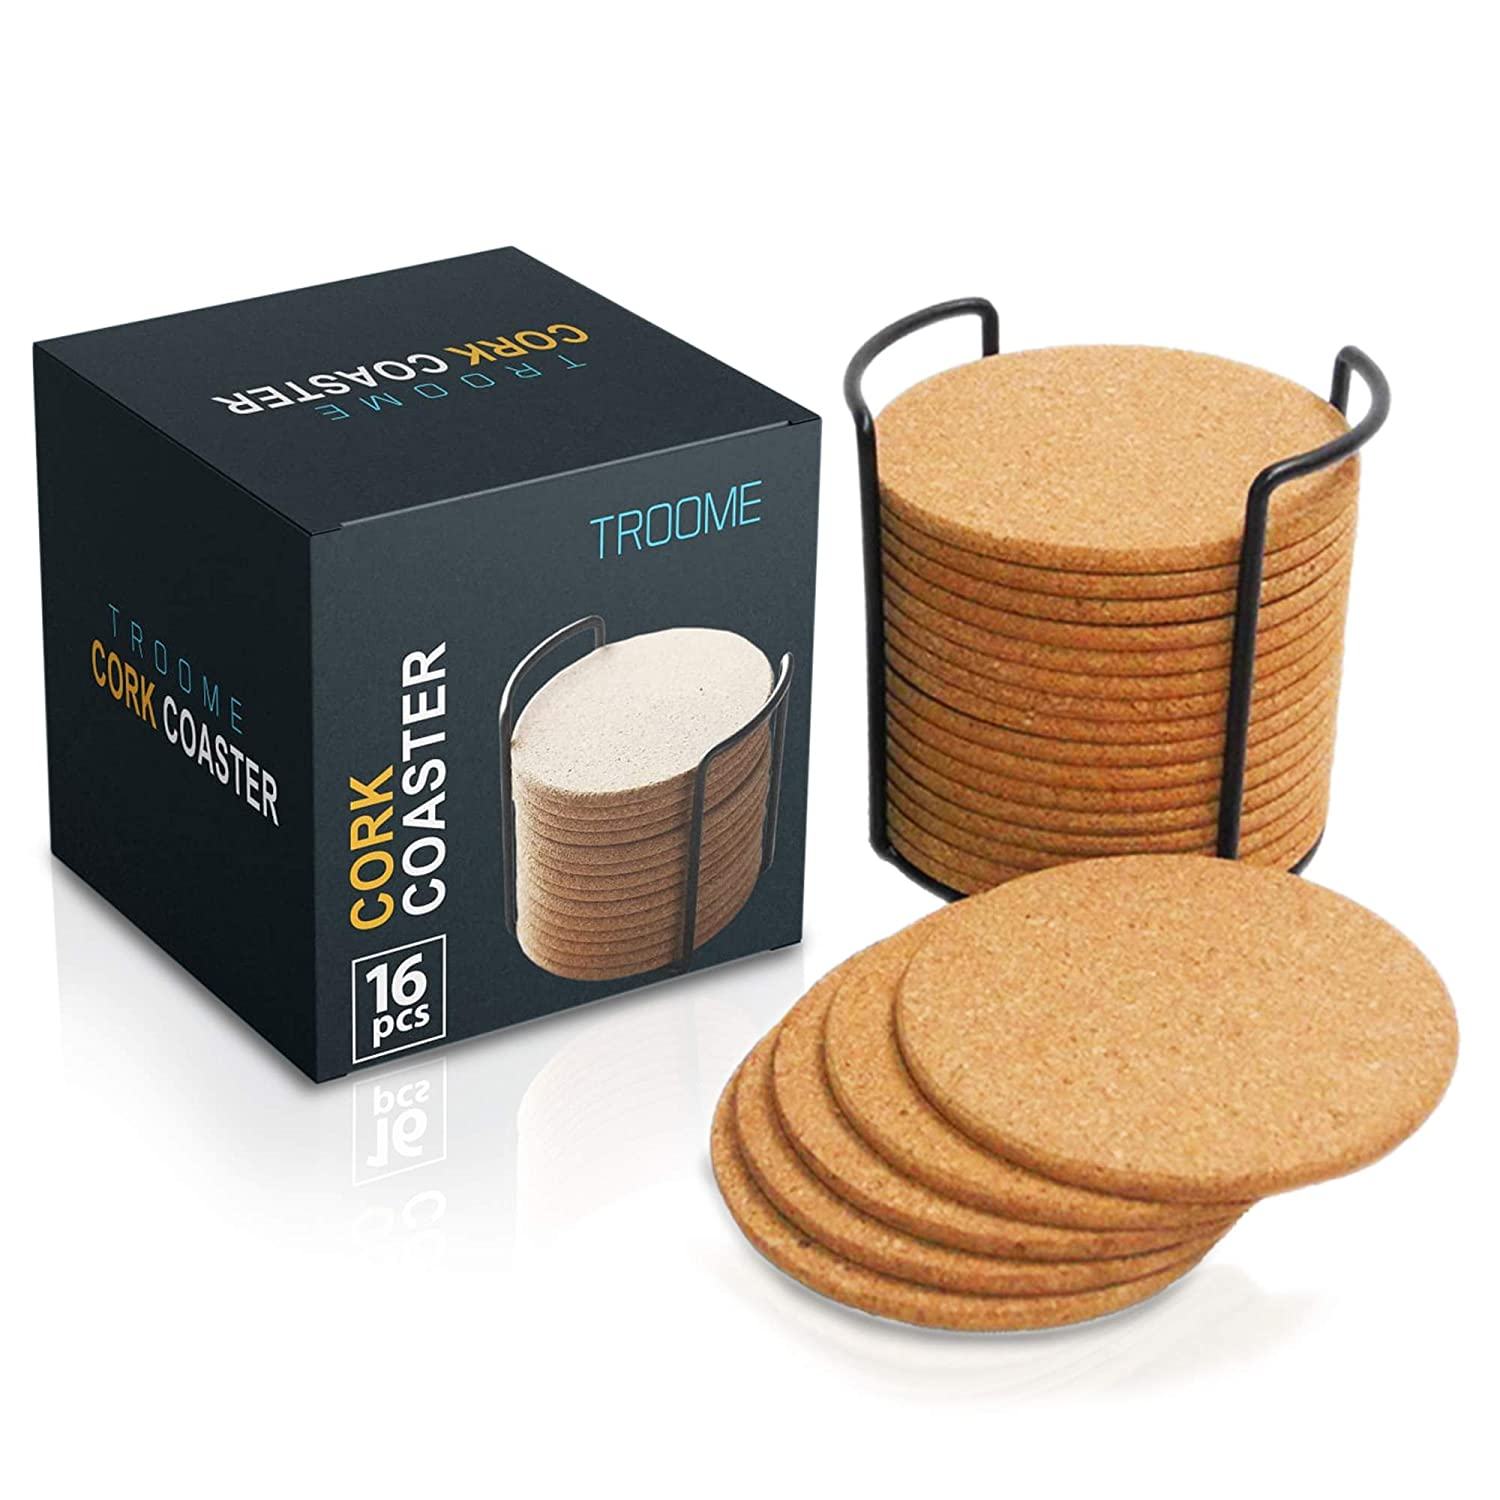 Cork Coasters Natural Absorbent Drink Table Blank Coasters Circles Set Of 16 With Metal Holder Storage Caddy